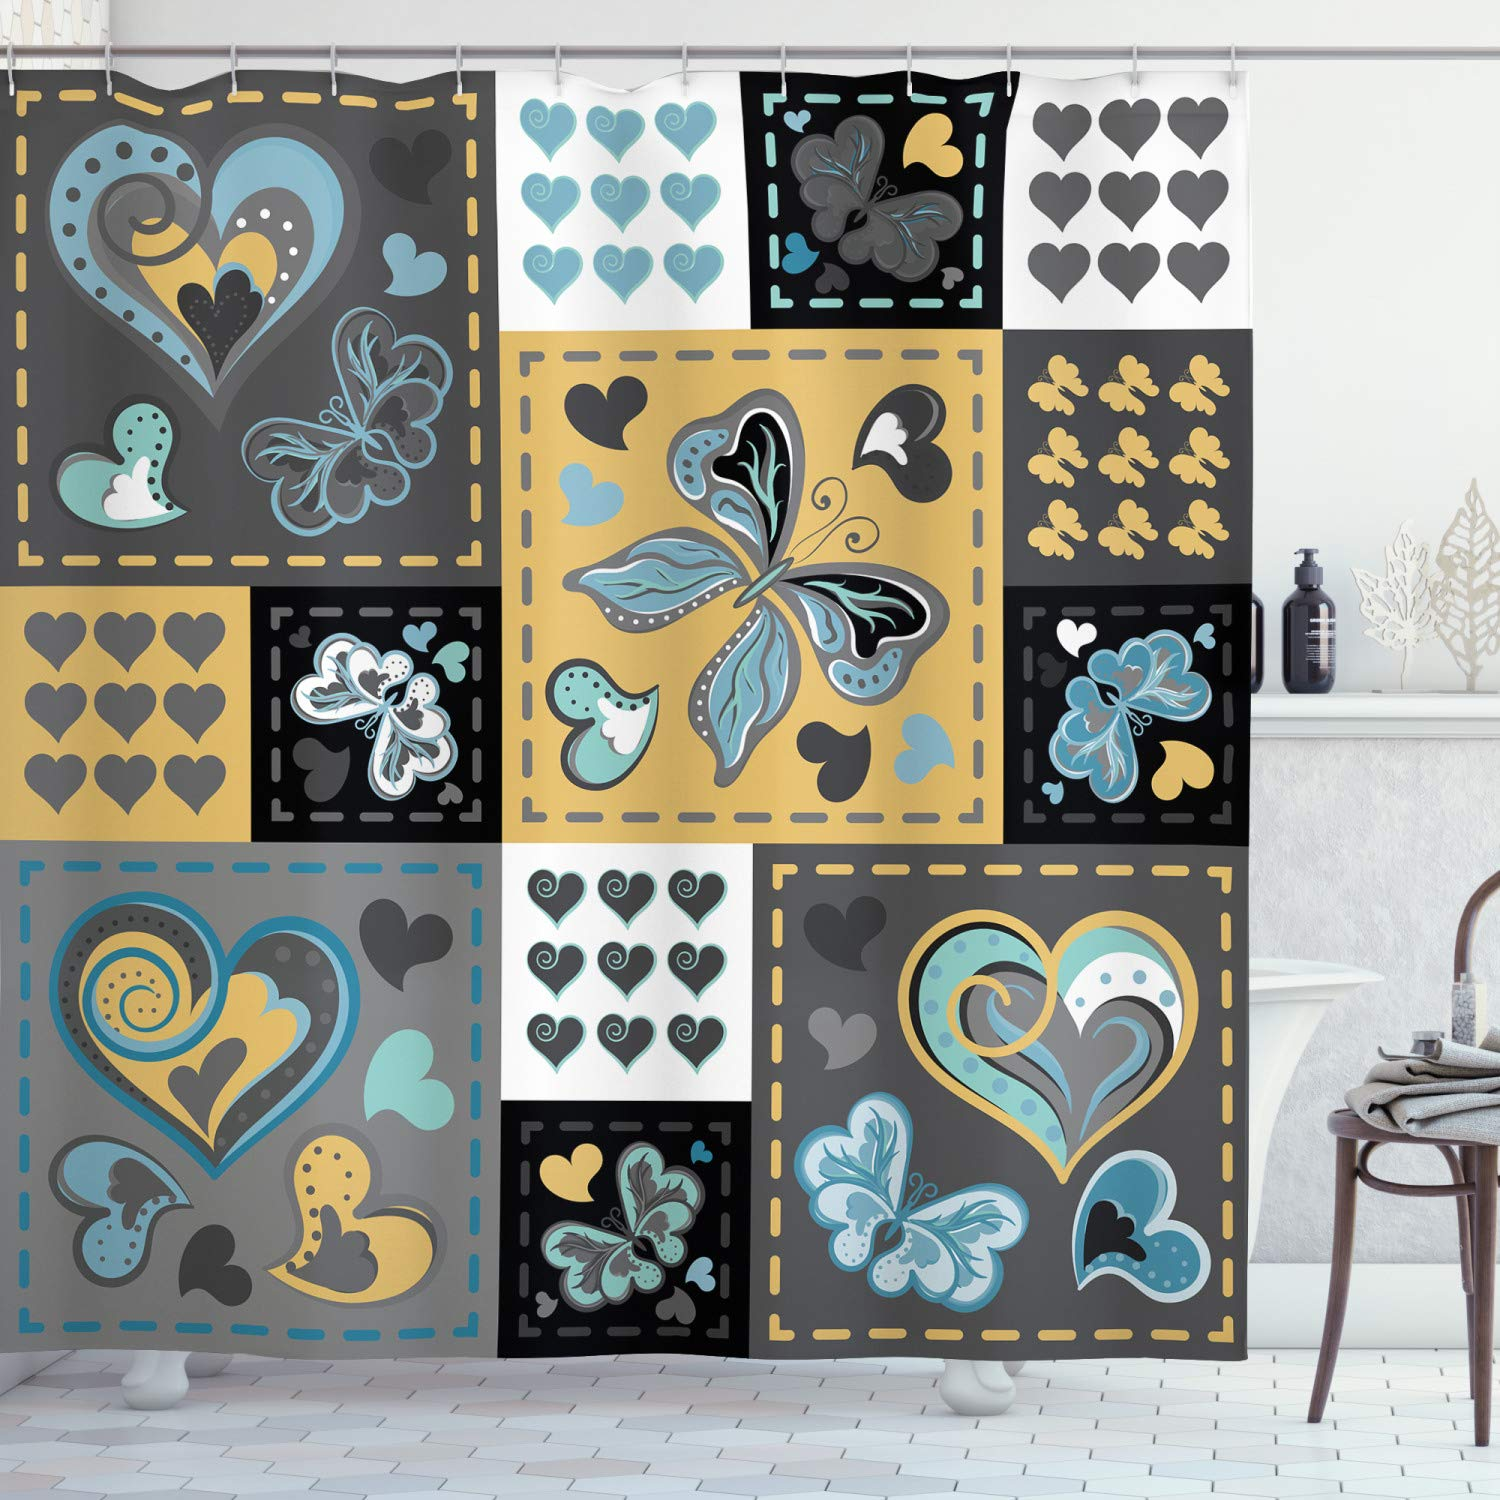 """Ambesonne Vintage Shower Curtain, Dark Textured Vintage Ornament with Heart and Butterfly Motif in Mix Retro Design, Cloth Fabric Bathroom Decor Set with Hooks, 75"""" Long, Grey Yellow"""